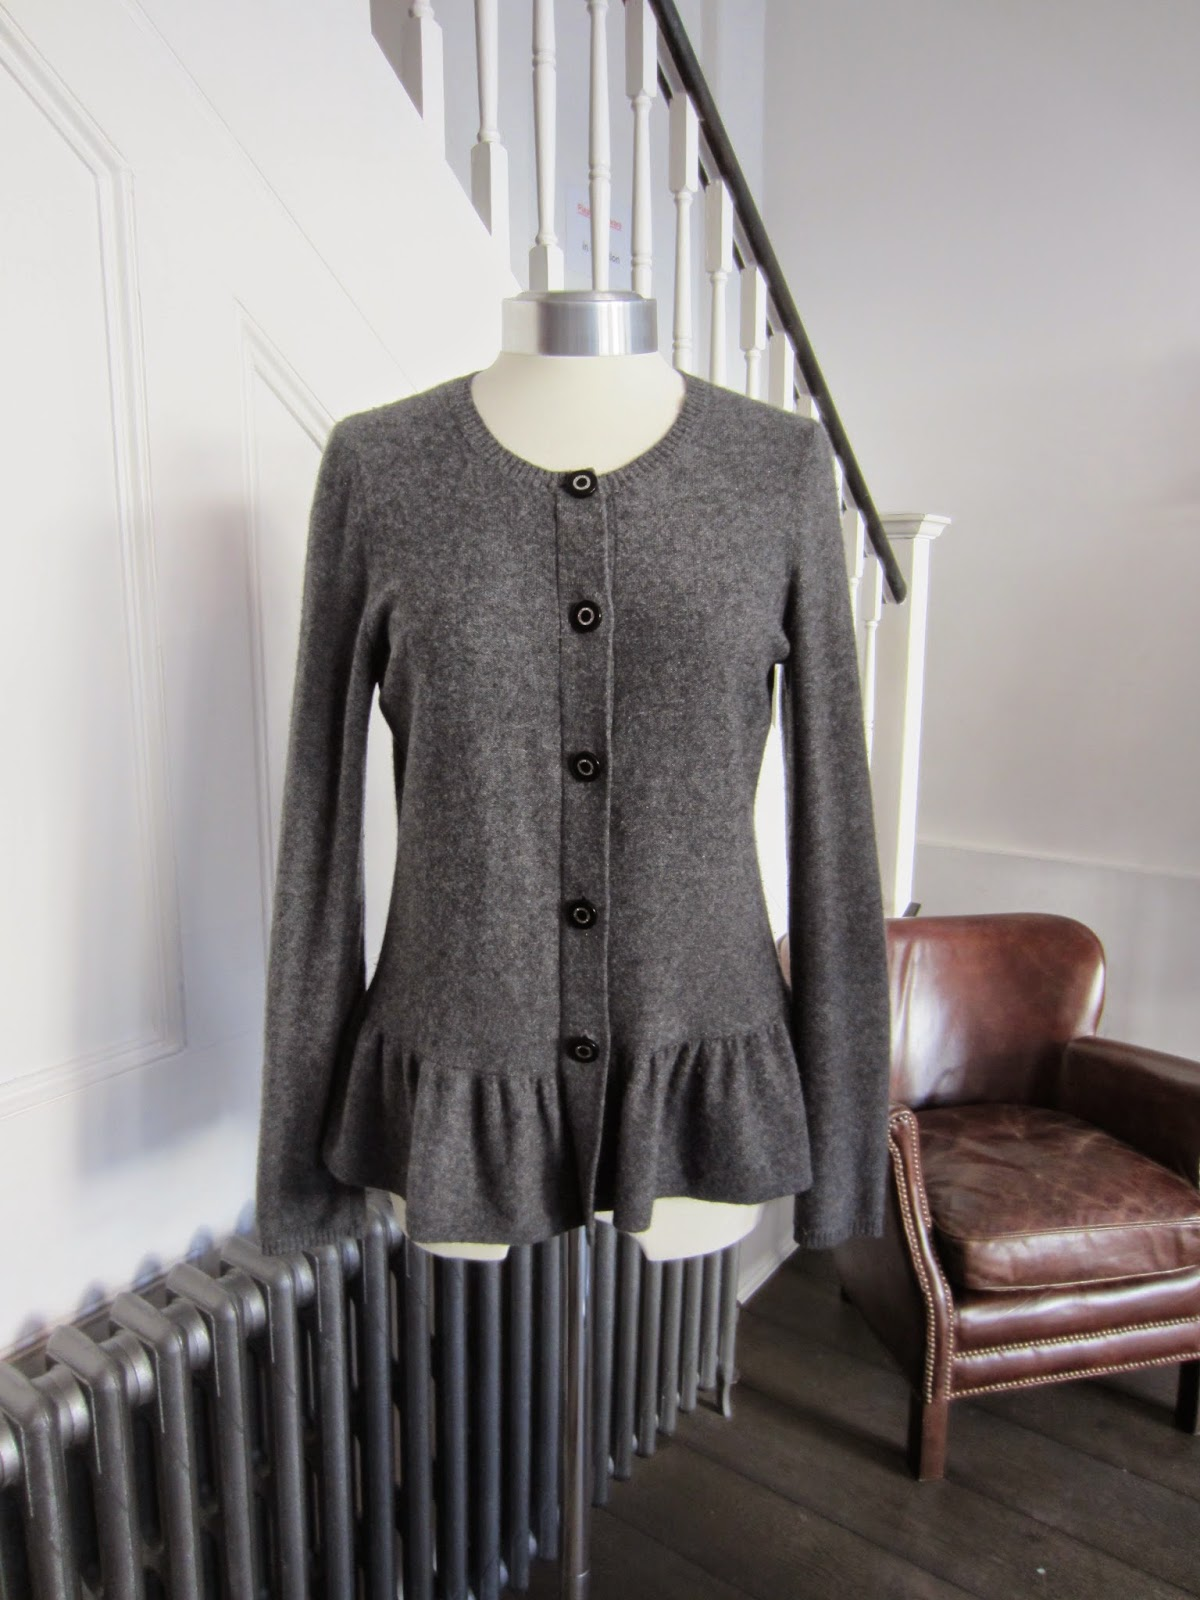 Tory Burch Grey Cashmere Cardigan